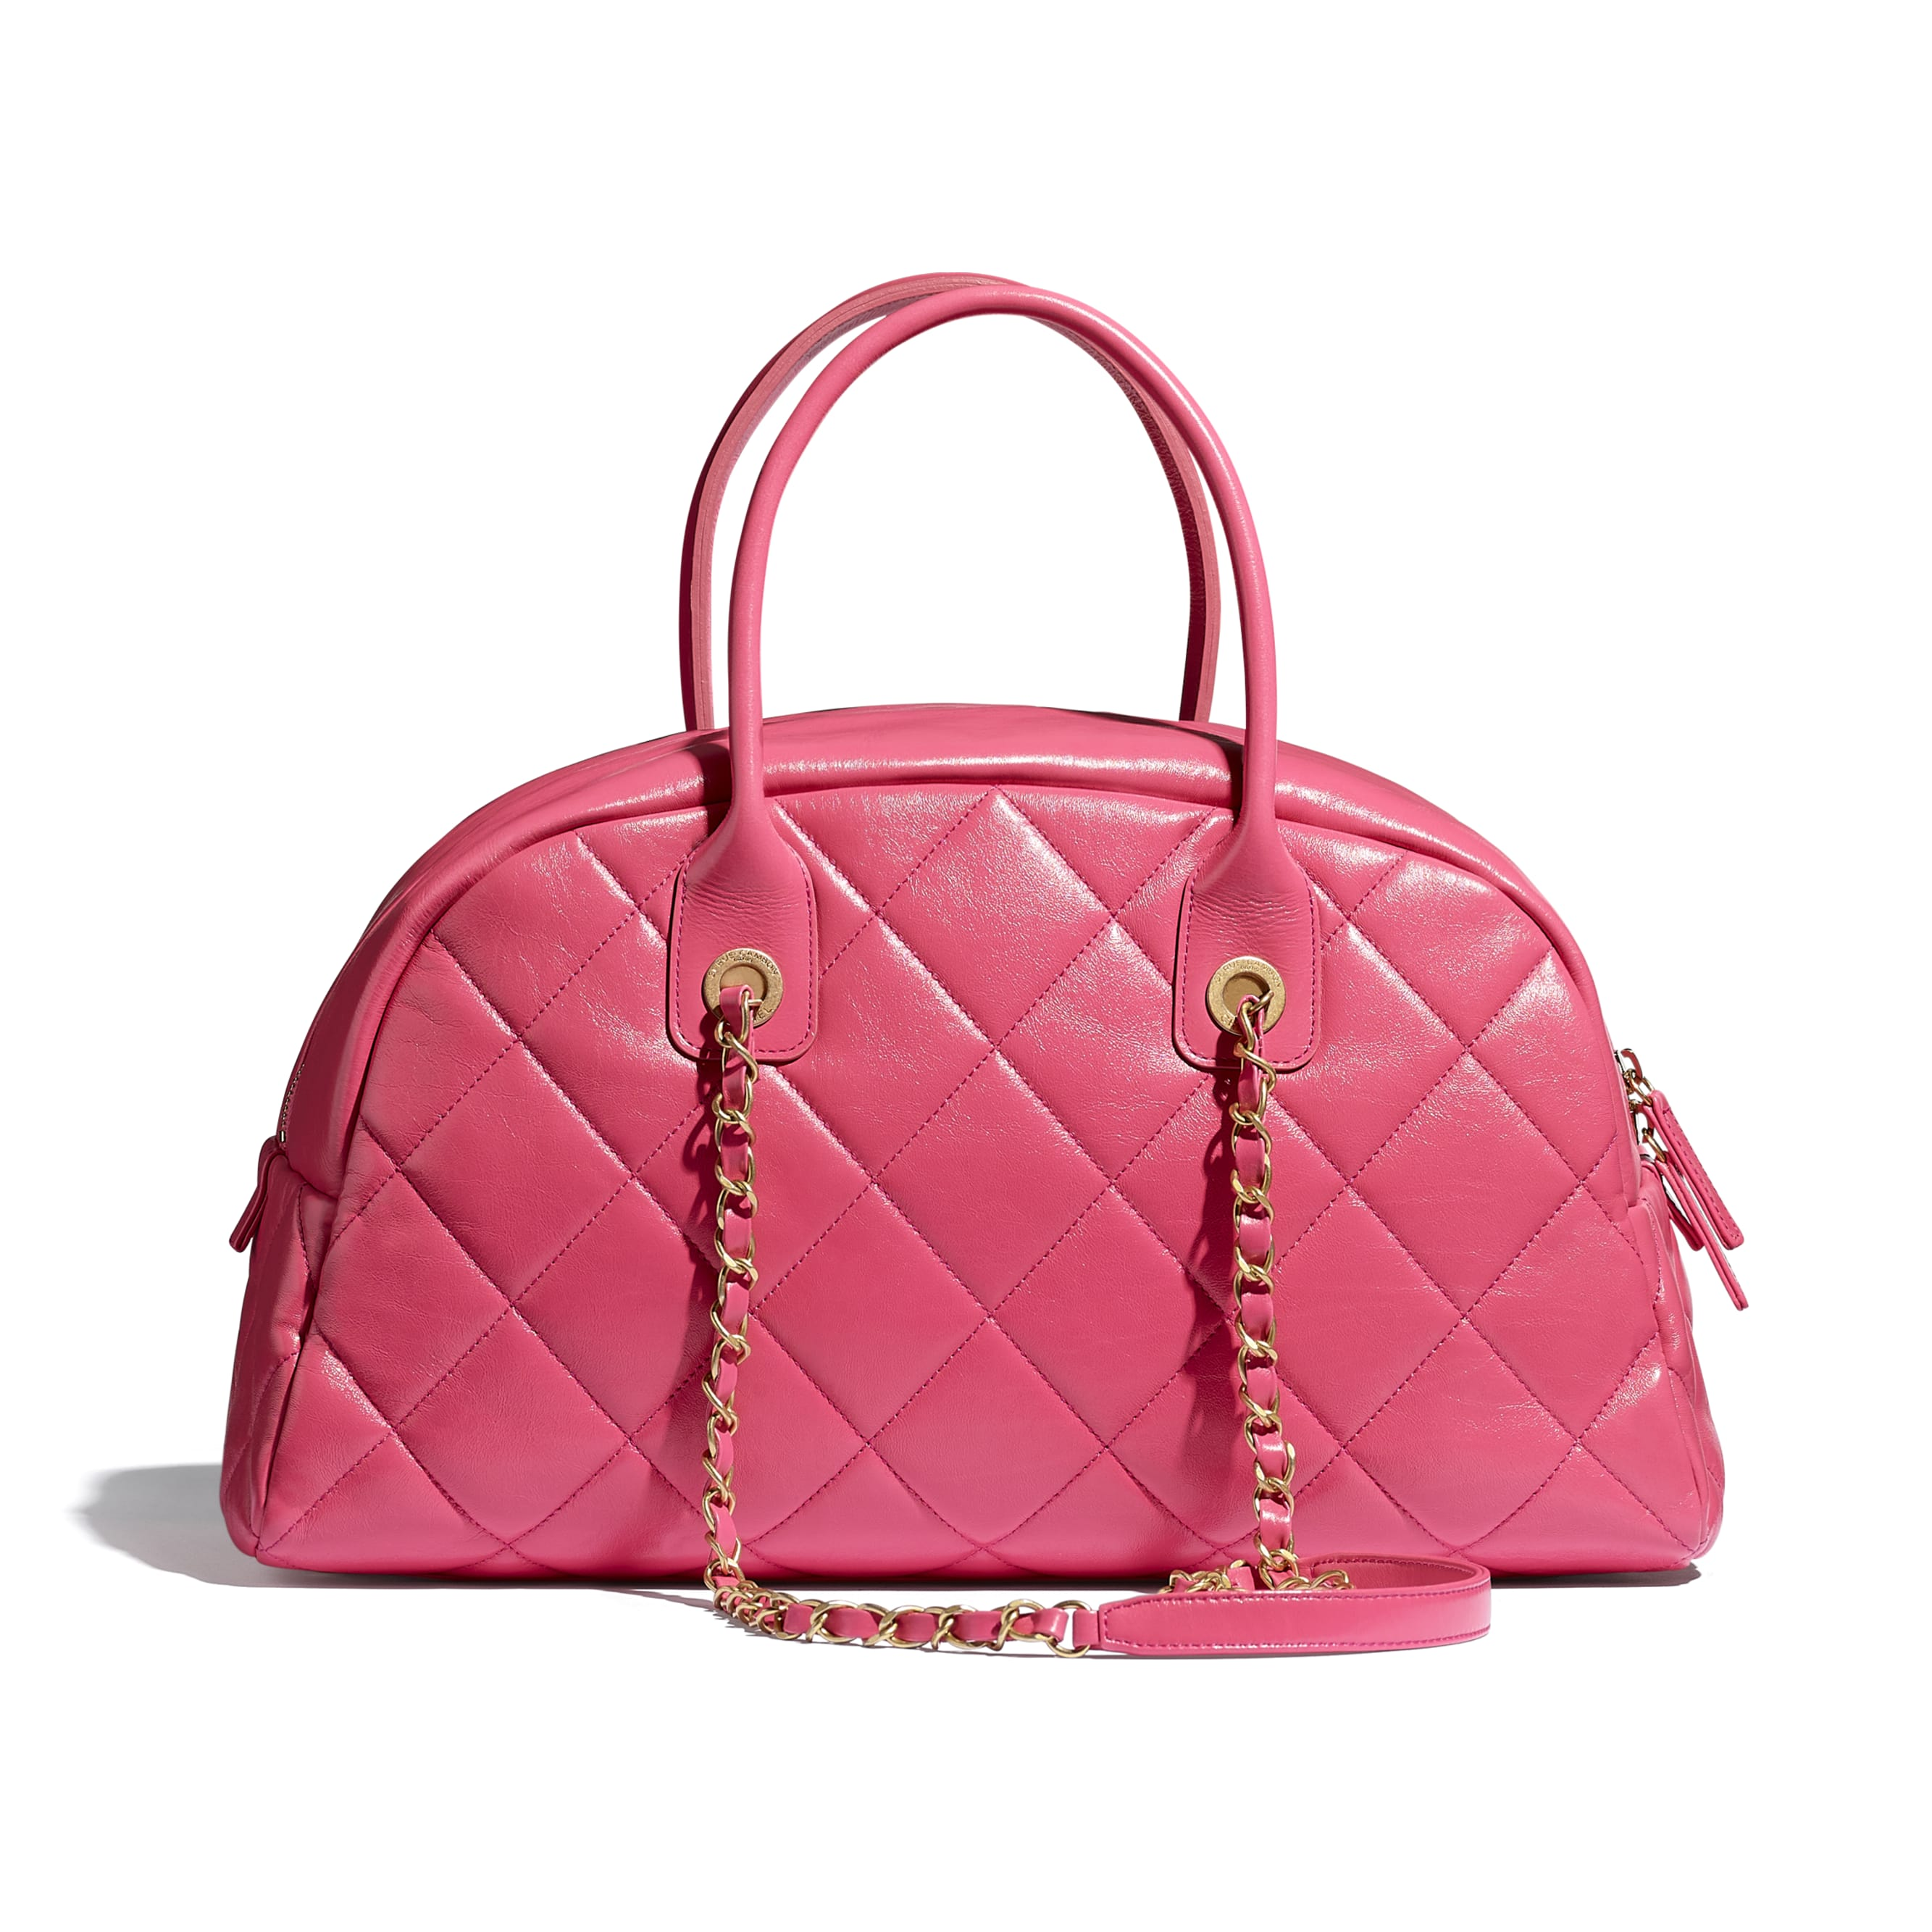 Bowling Bag - Pink - Calfskin & Gold-Tone Metal - CHANEL - Alternative view - see standard sized version